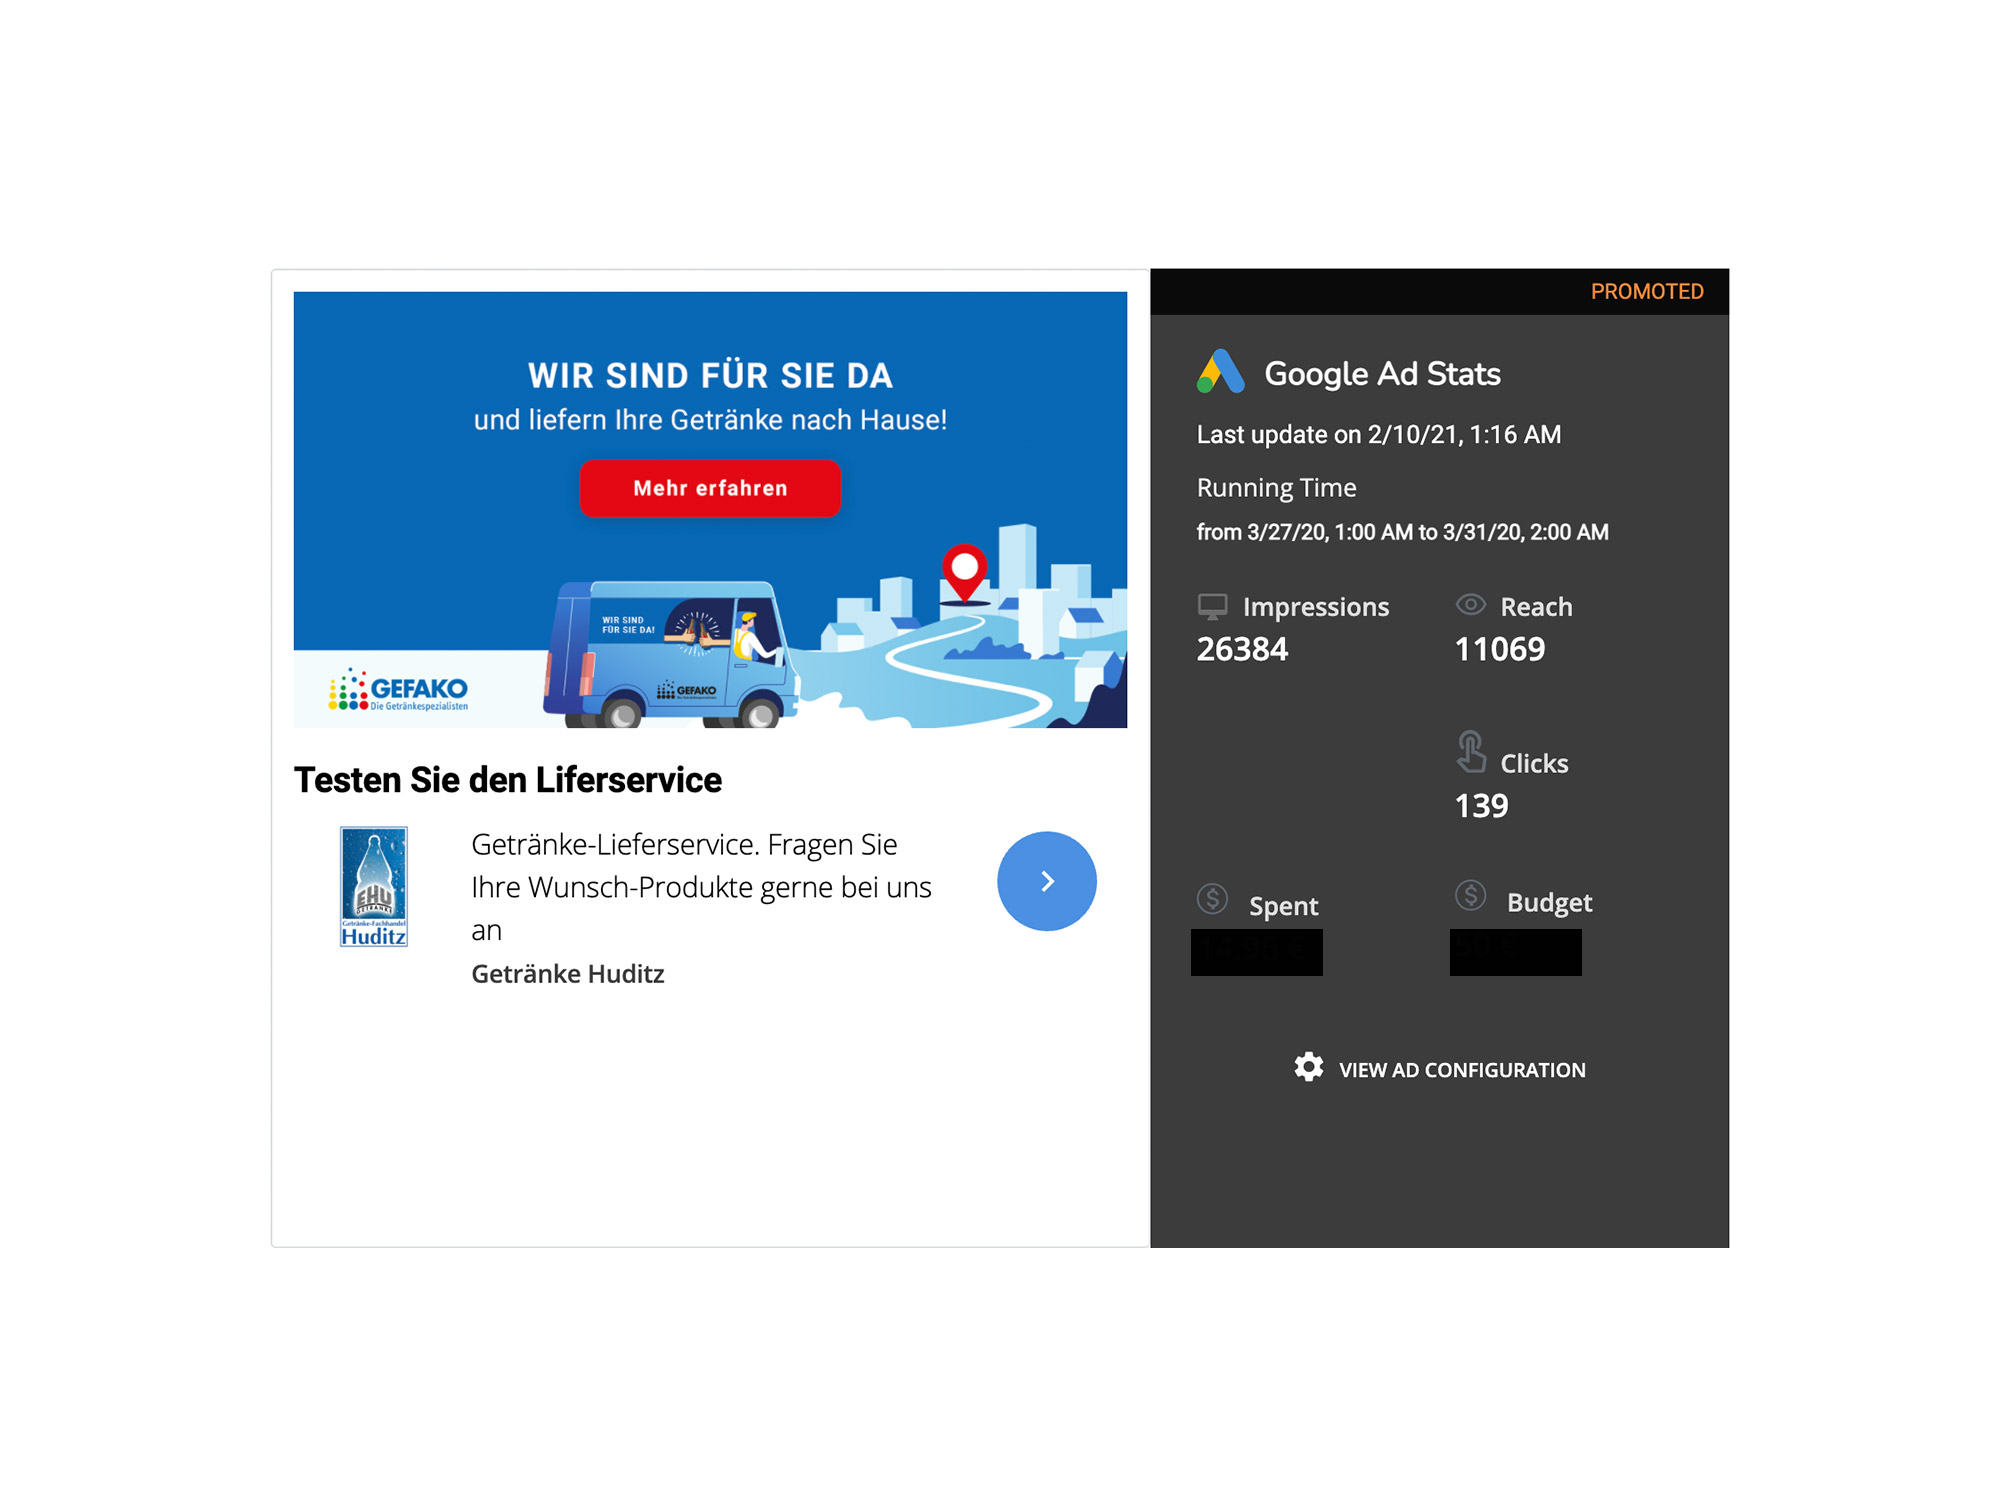 Google Ads and all relevant key figures within the socialPALS platform